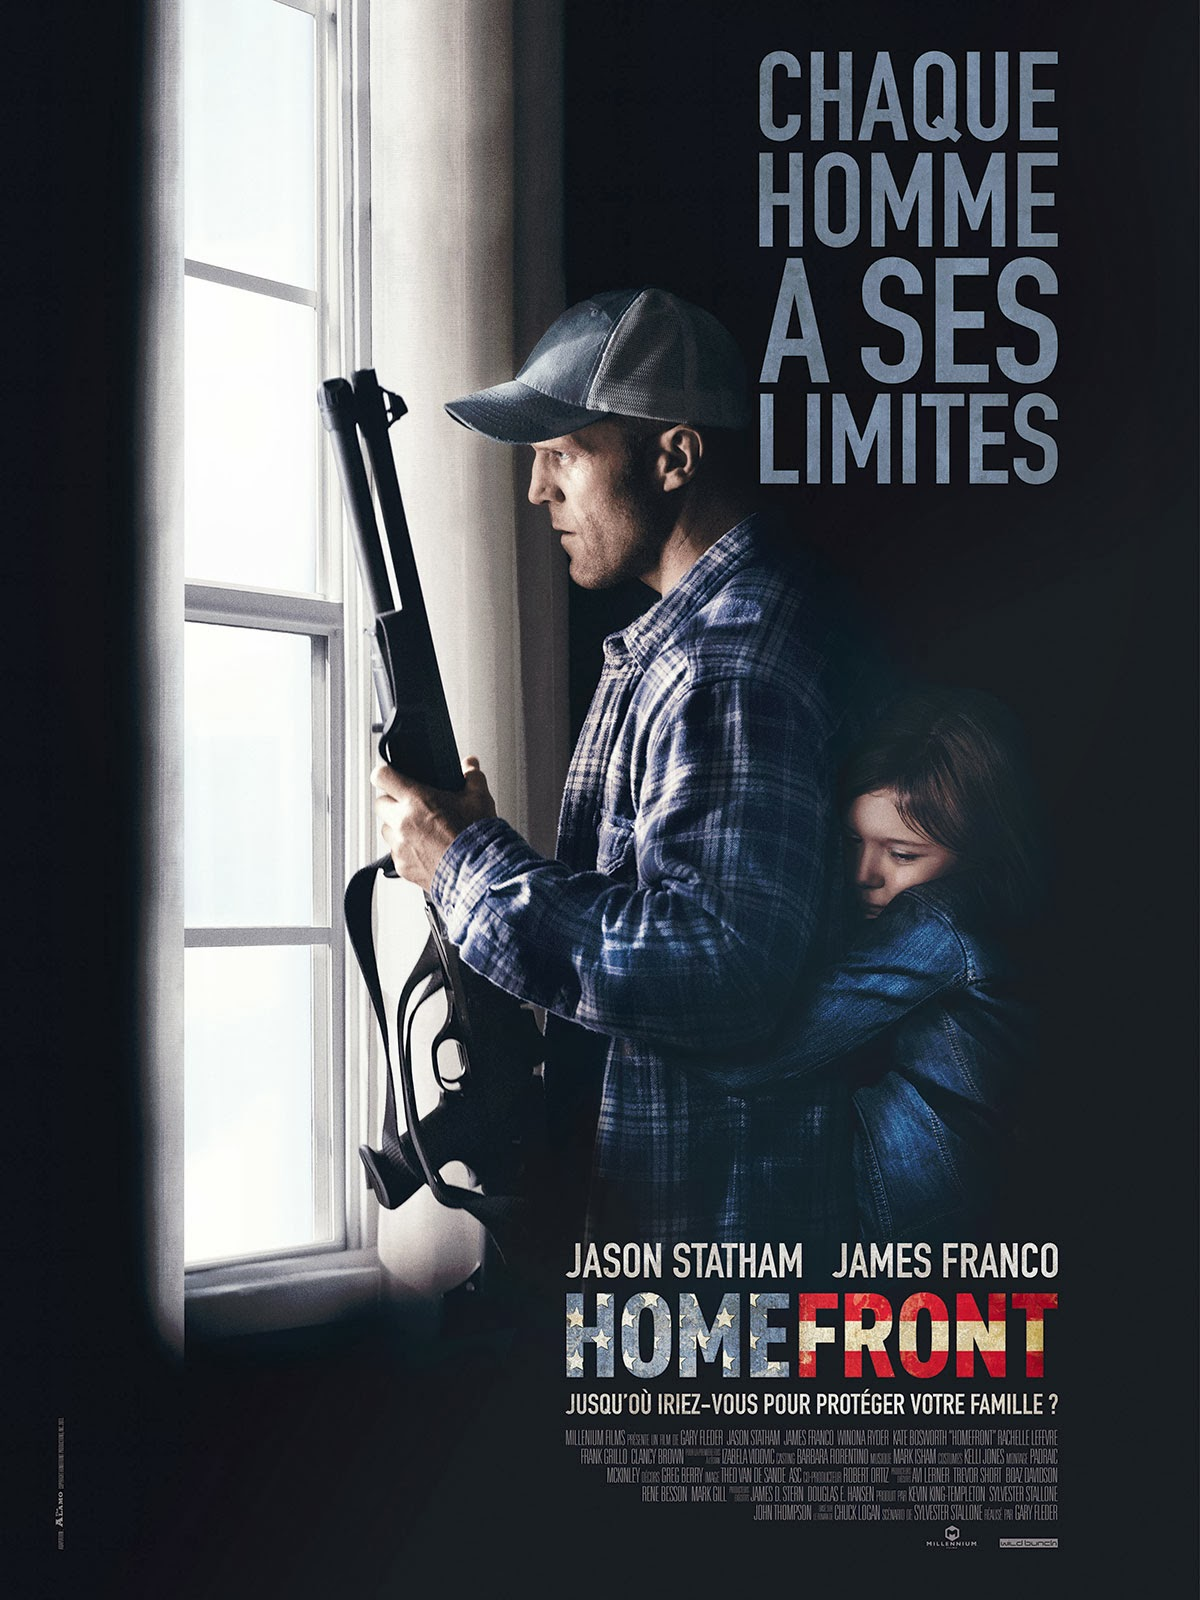 http://fuckingcinephiles.blogspot.fr/2014/01/critique-homefront.html